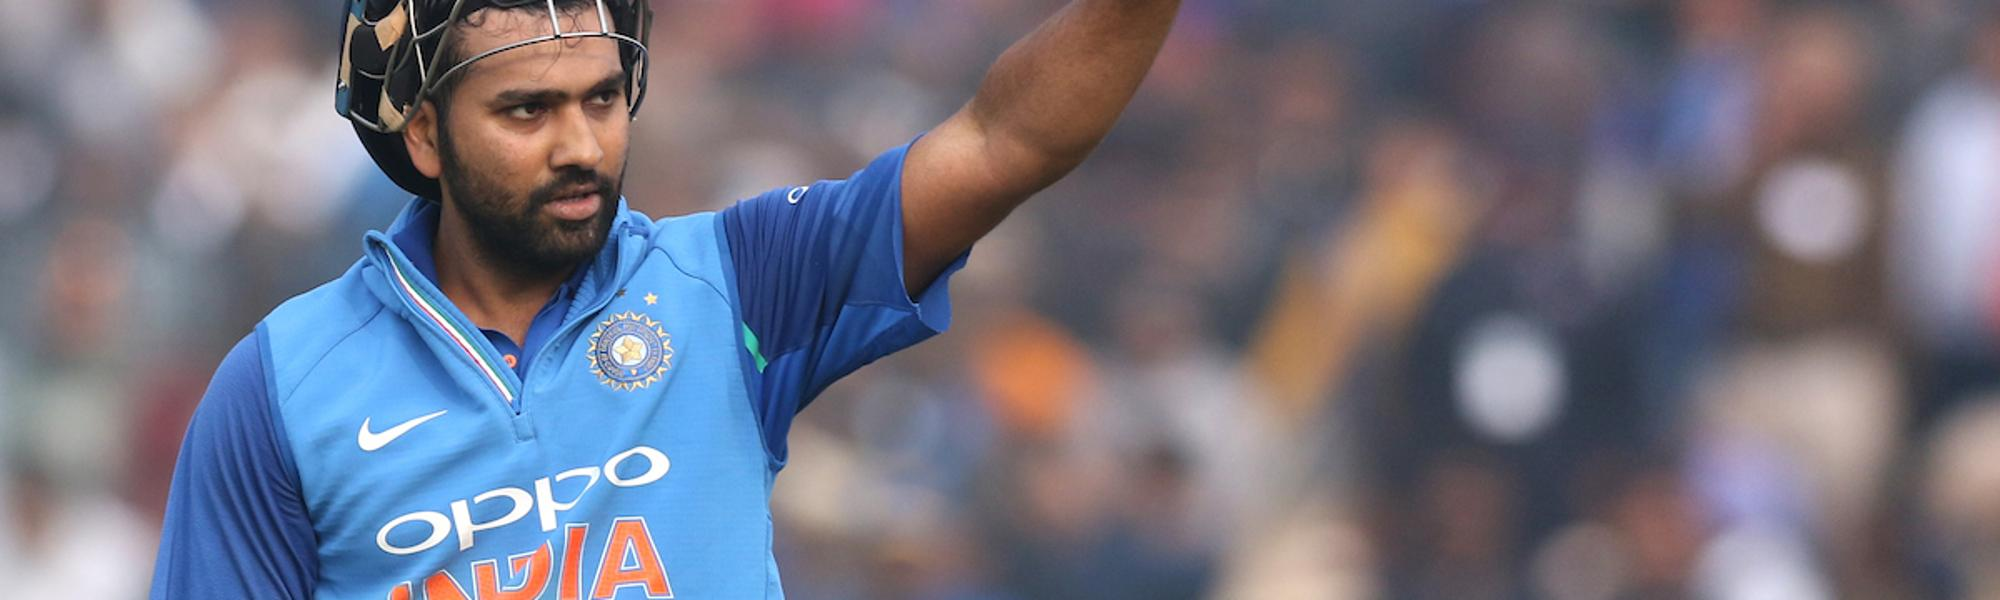 There was no stopping Rohit (208*) once he crossed his century, smashing his next 100 runs in just 36 deliveries to bring up his third double-century in ODIs as India reached a towering 392 for 4 in its 50 overs.